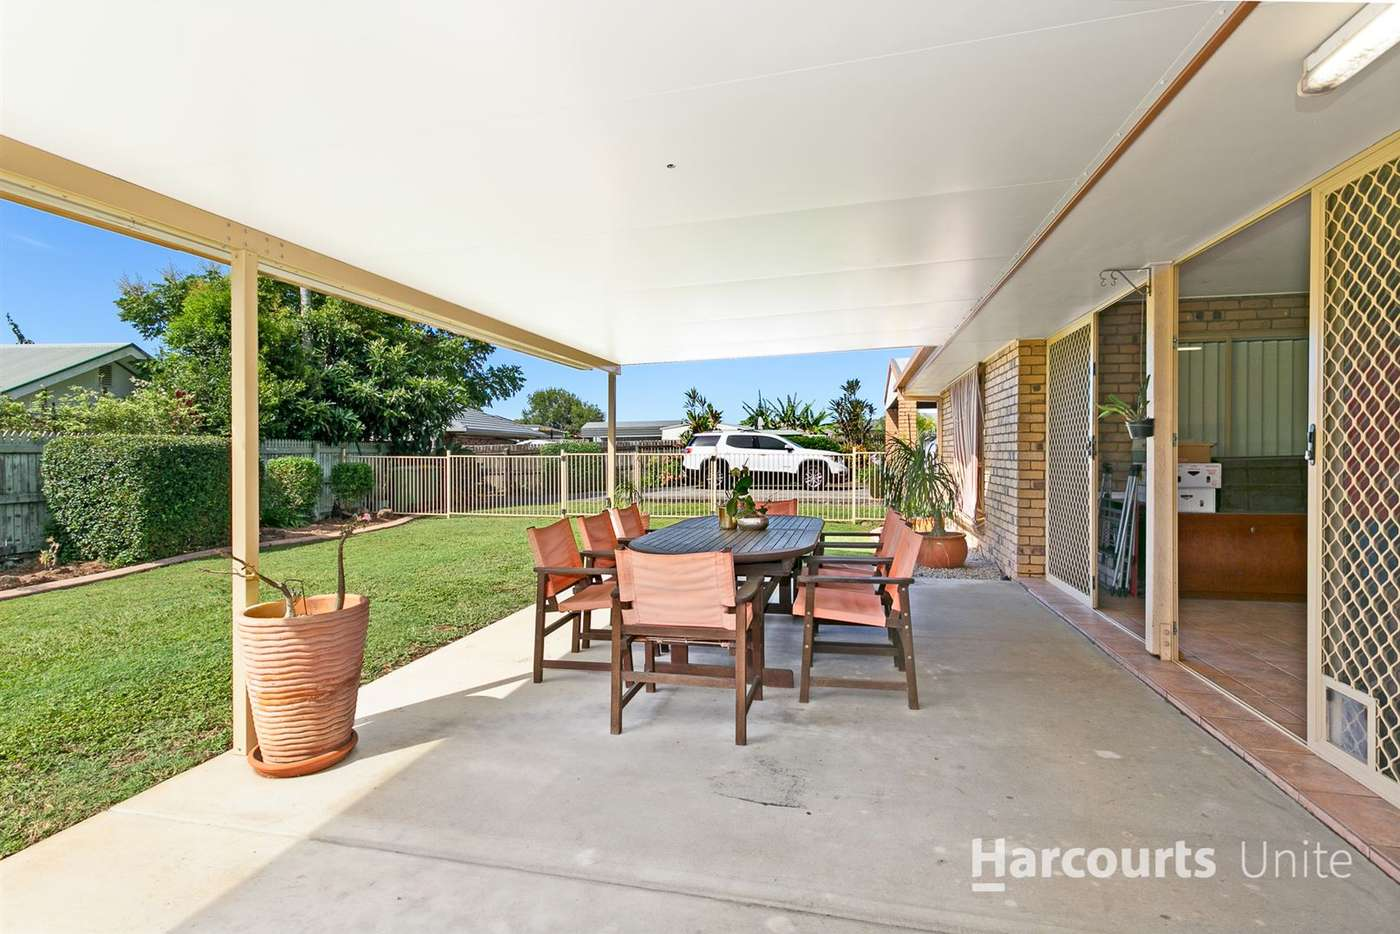 Fifth view of Homely house listing, 9 Lenae Court, Murrumba Downs QLD 4503